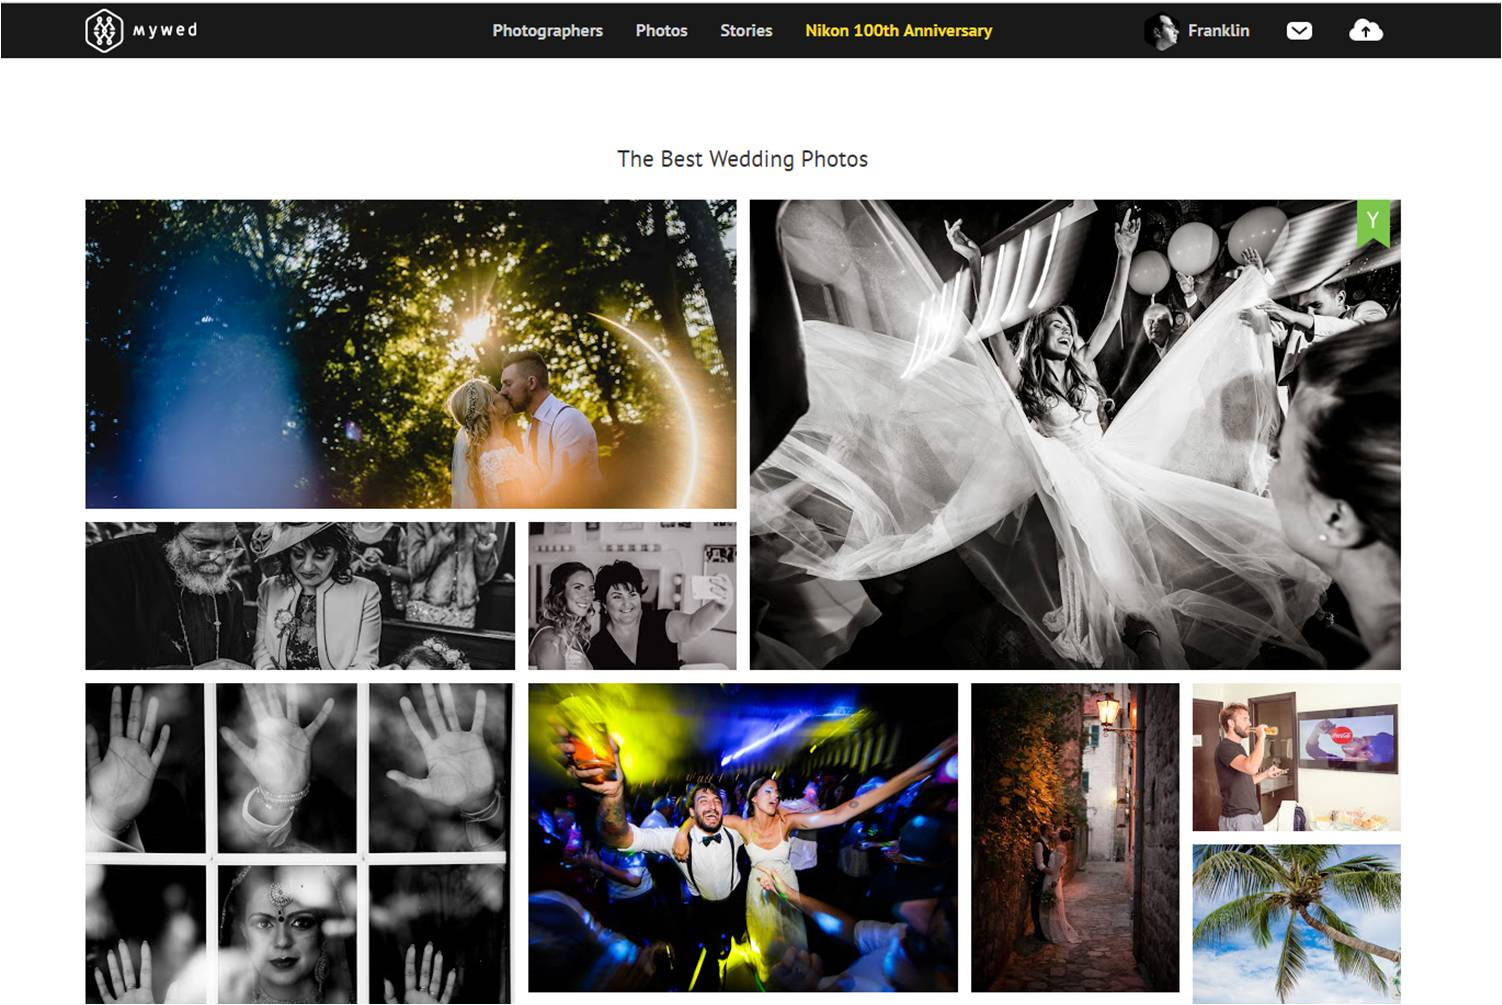 One of the images from this wedding was also featured on the main page of the best wedding photos of the international wedding photography website - www.mywed.com